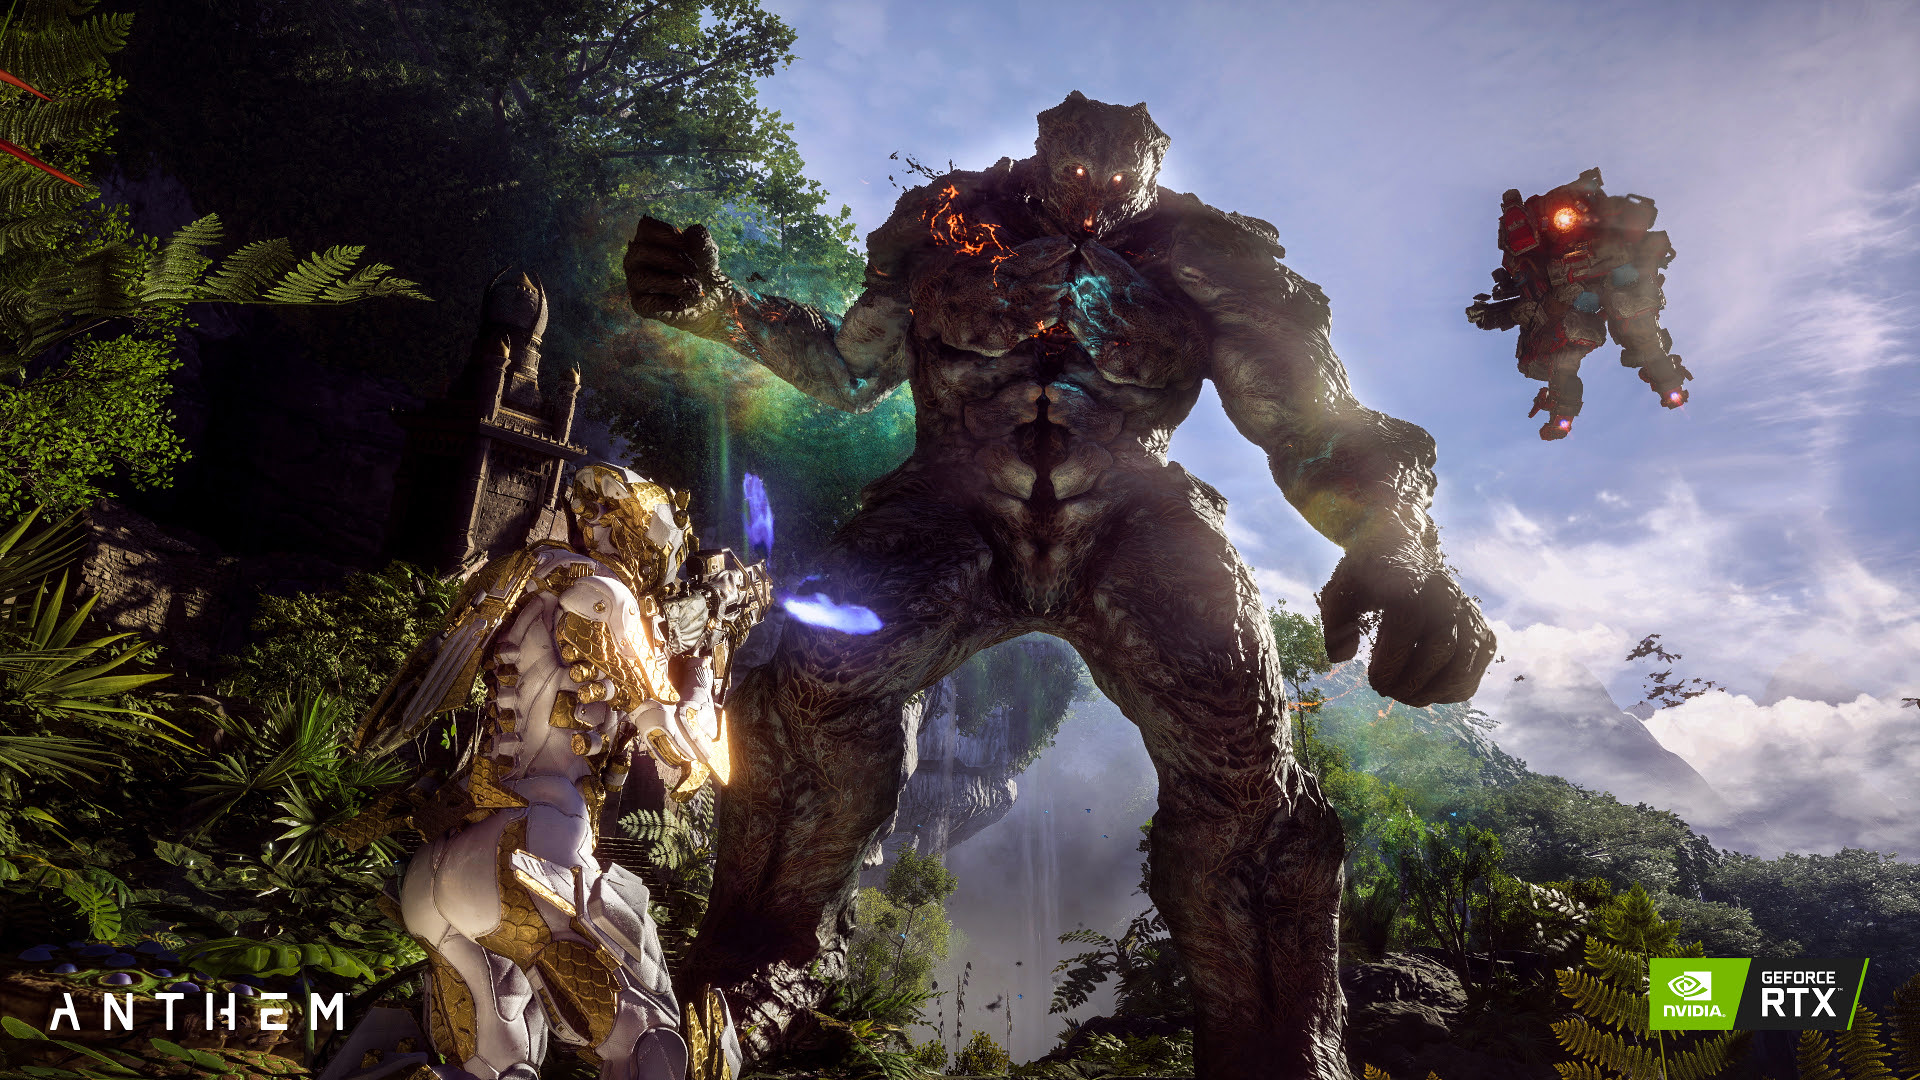 Anthem hits EA Access subscription service in an attempt to revitalise the RPG